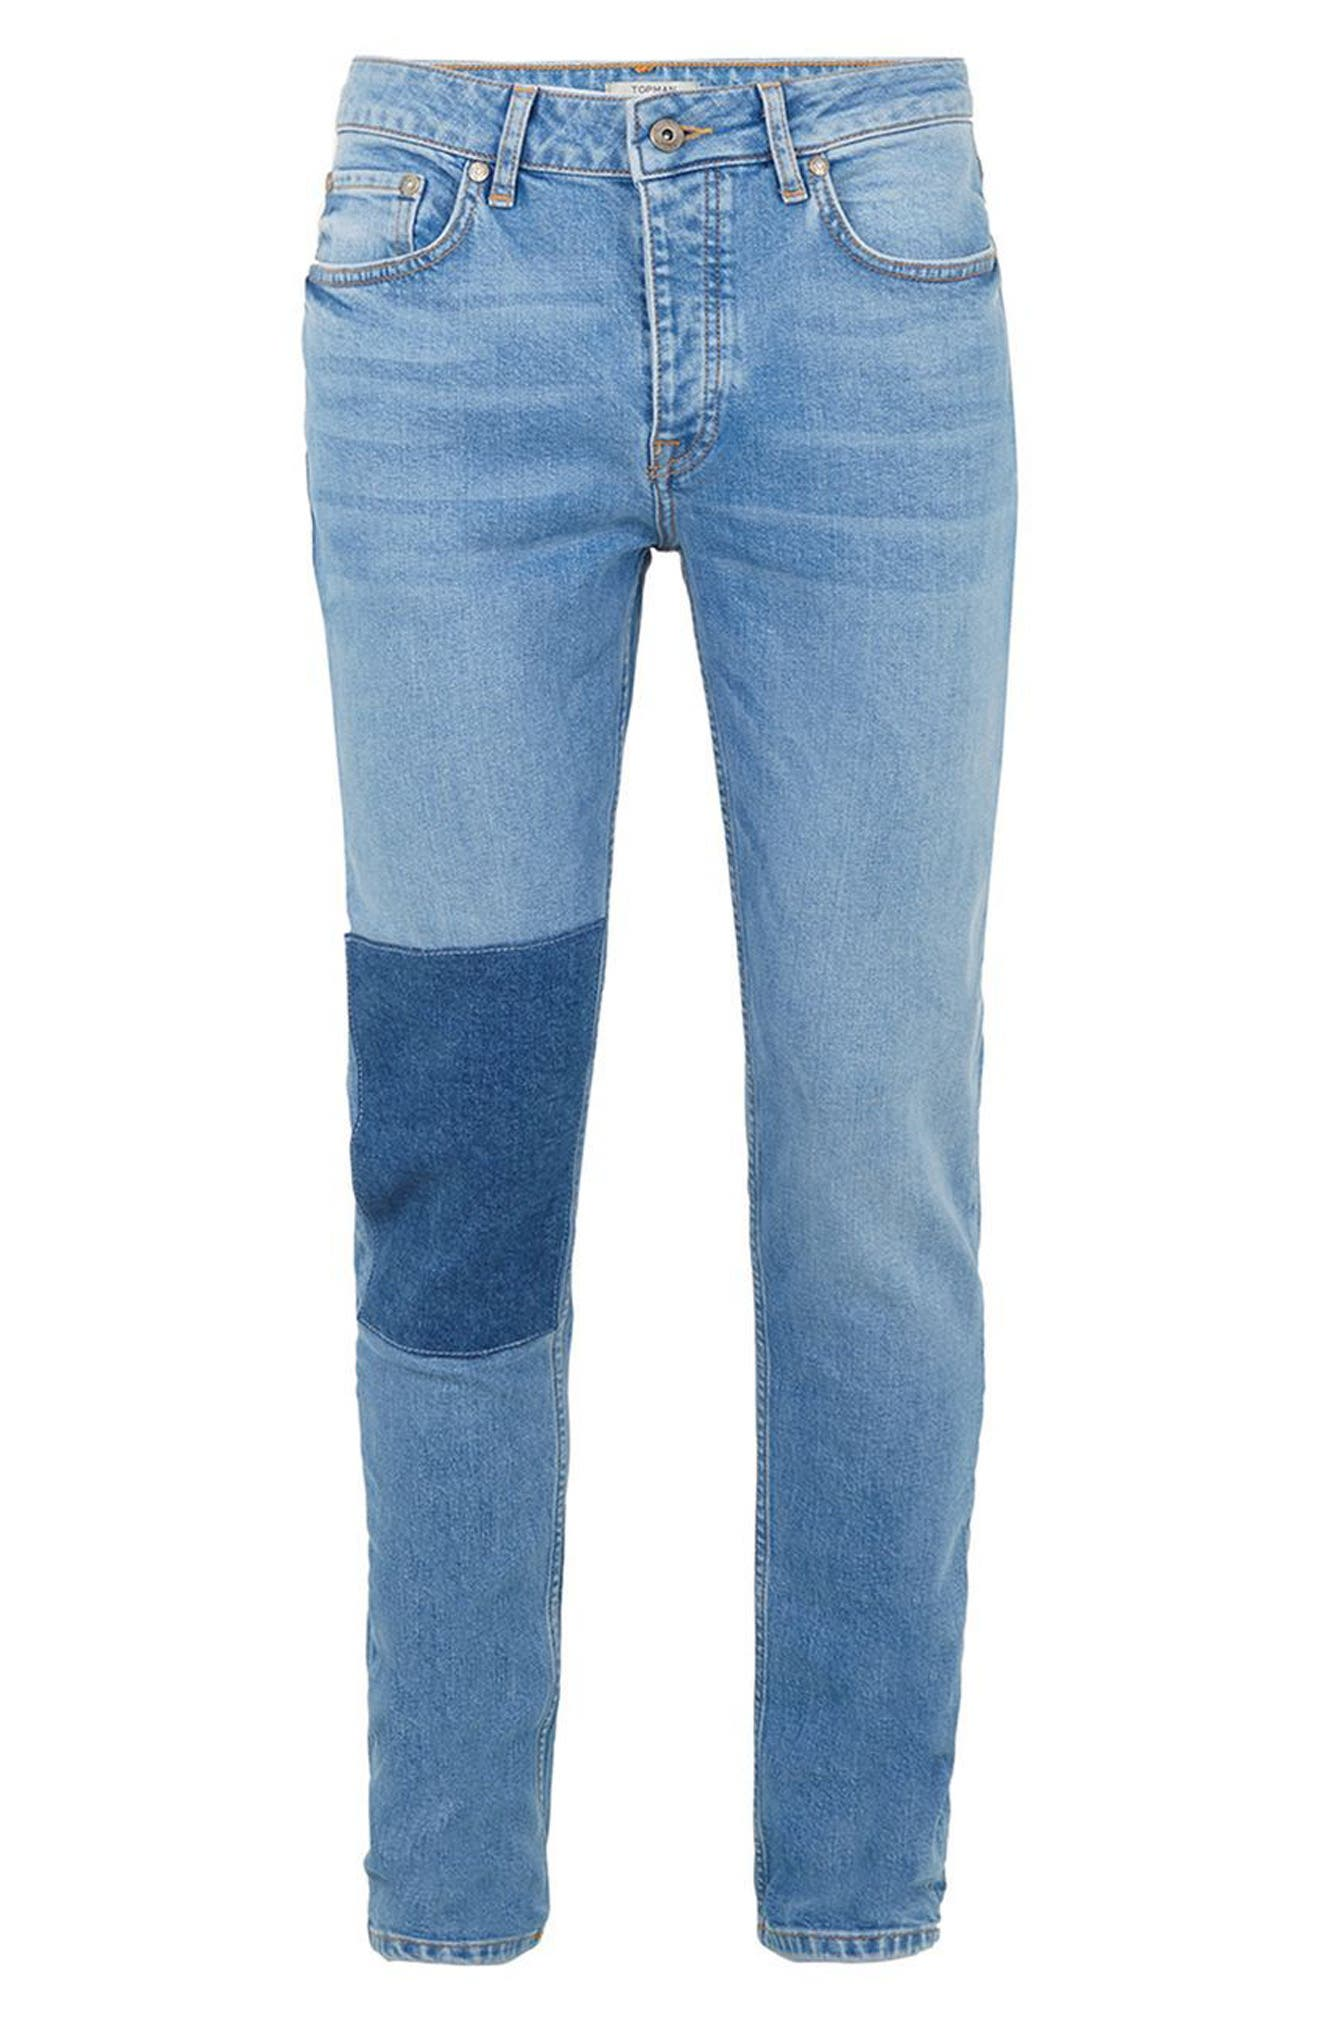 Patch Stretch Skinny Jeans,                             Alternate thumbnail 4, color,                             Blue